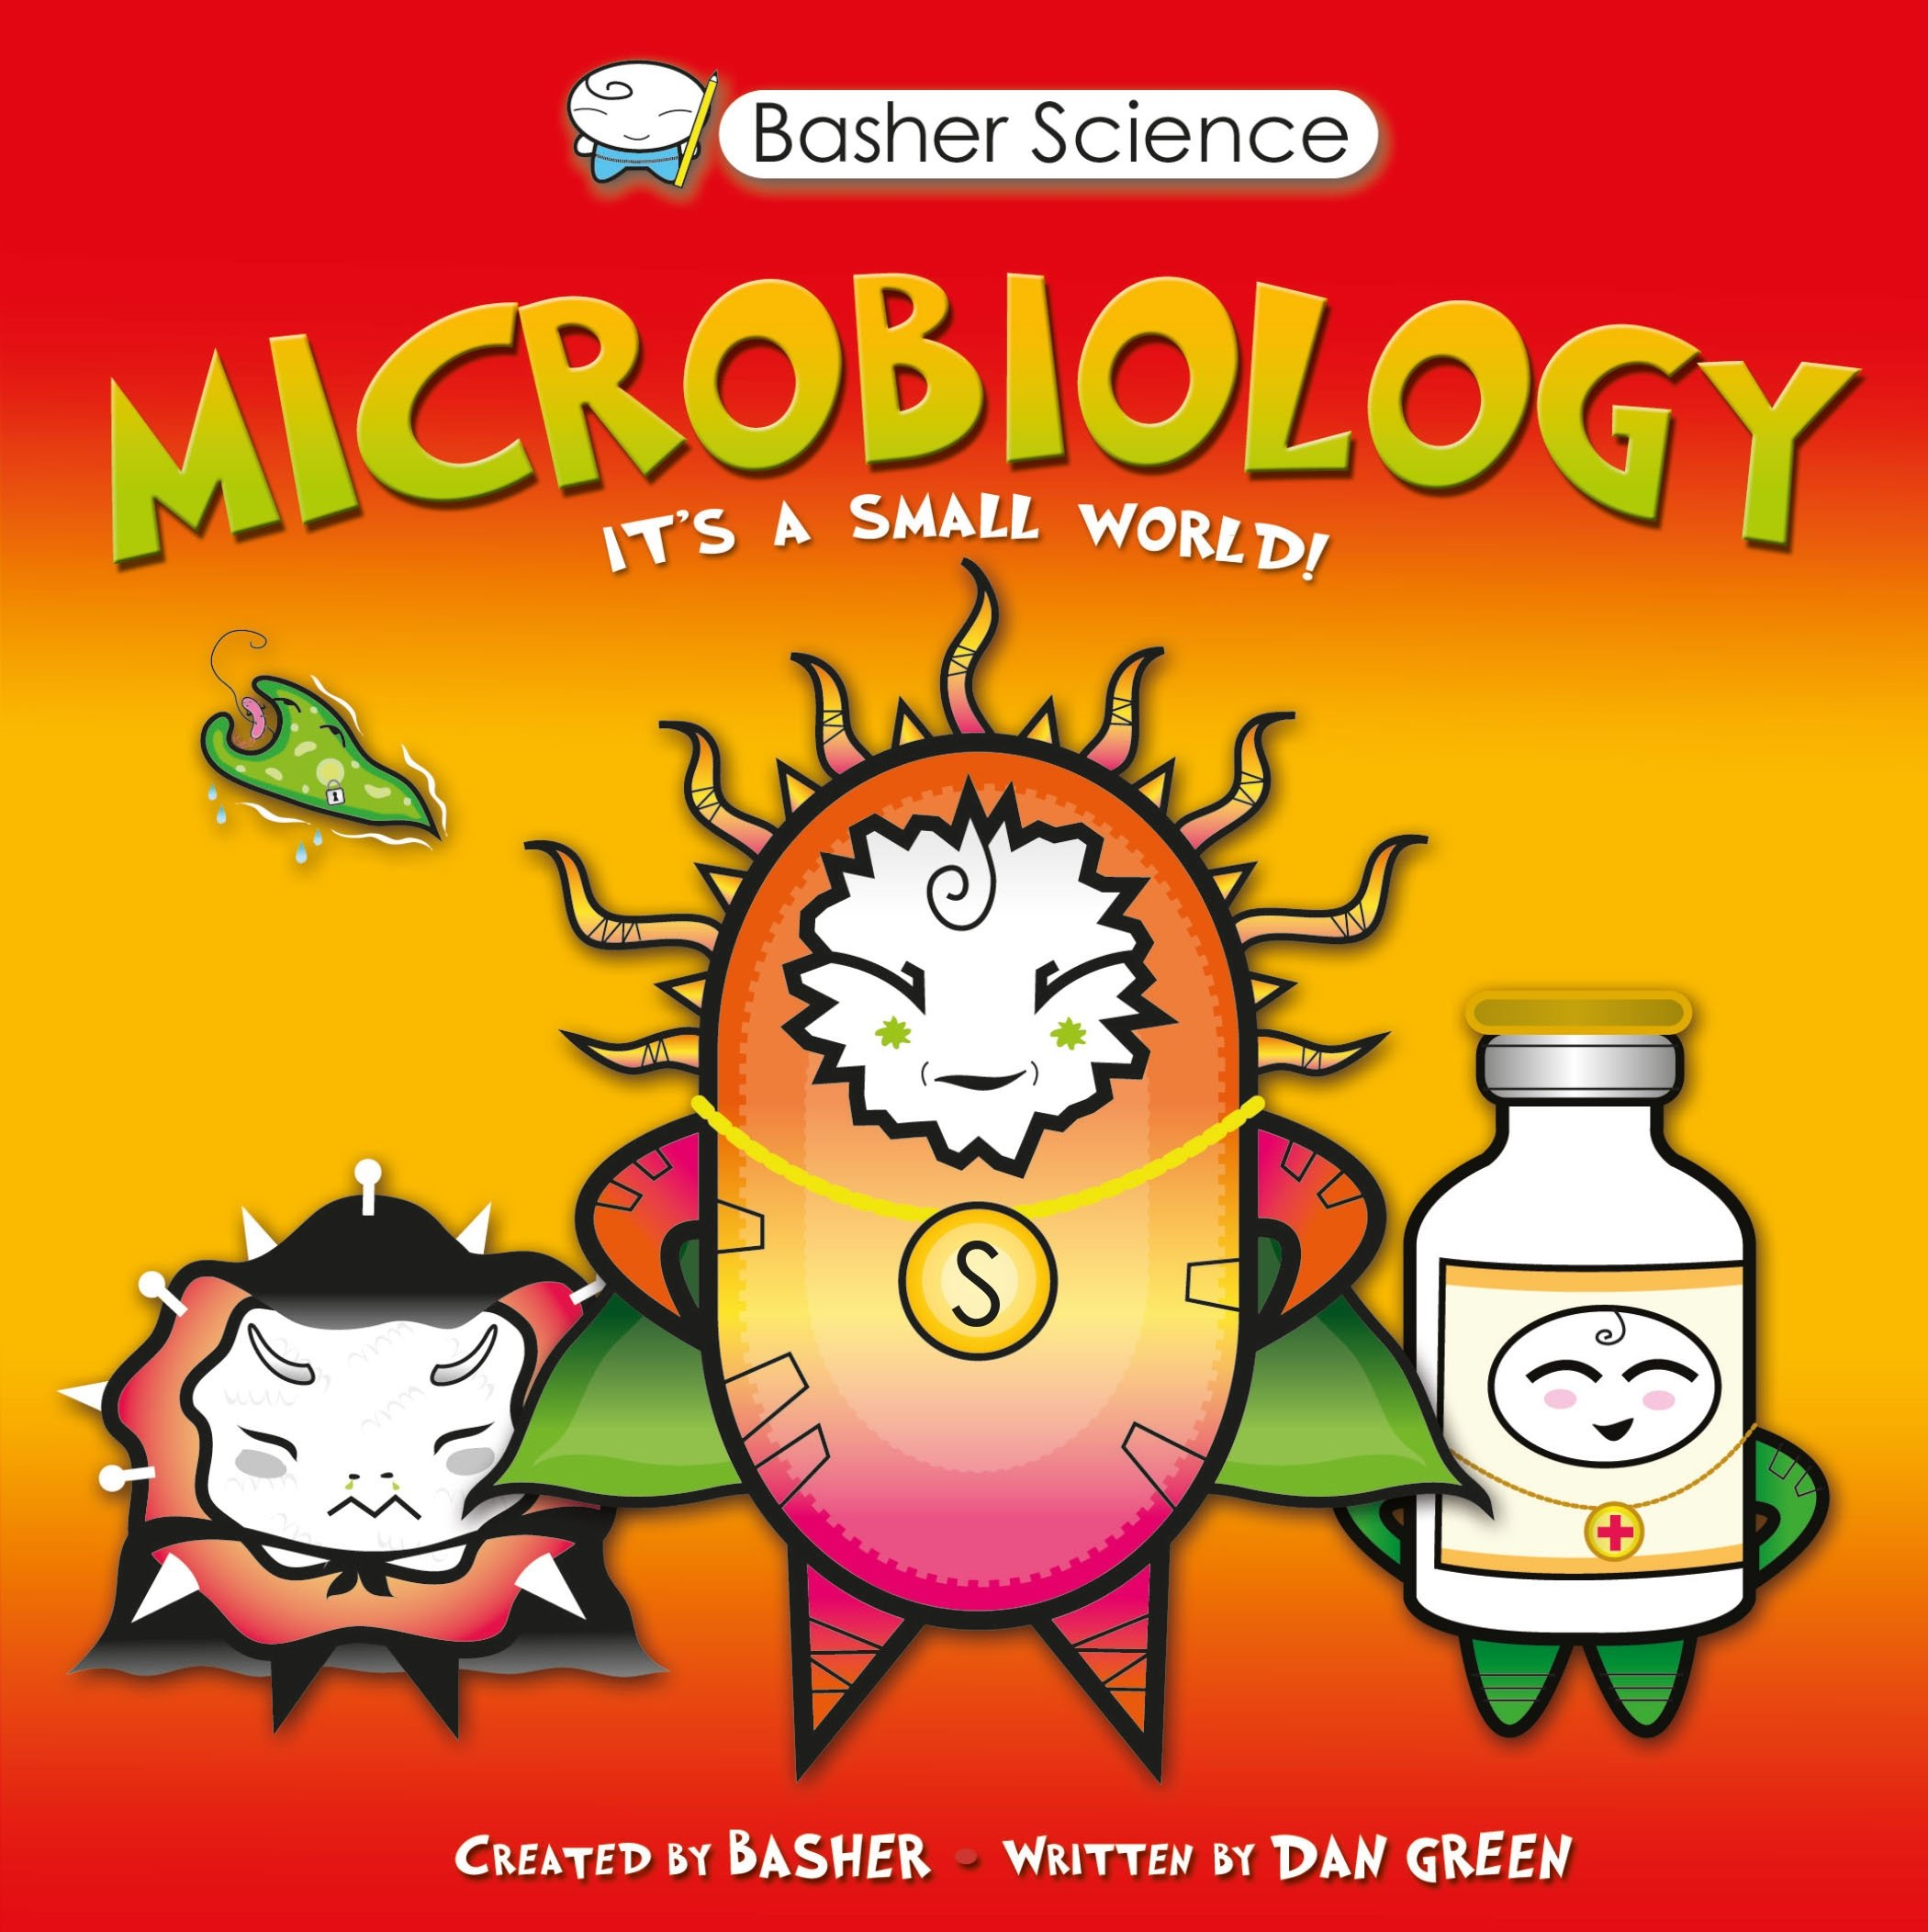 Basher Science: Microbiology сборник статей science and life proceedings of articles the international scientific conference czech republic karlovy vary – russia moscow 28–29 april 2016